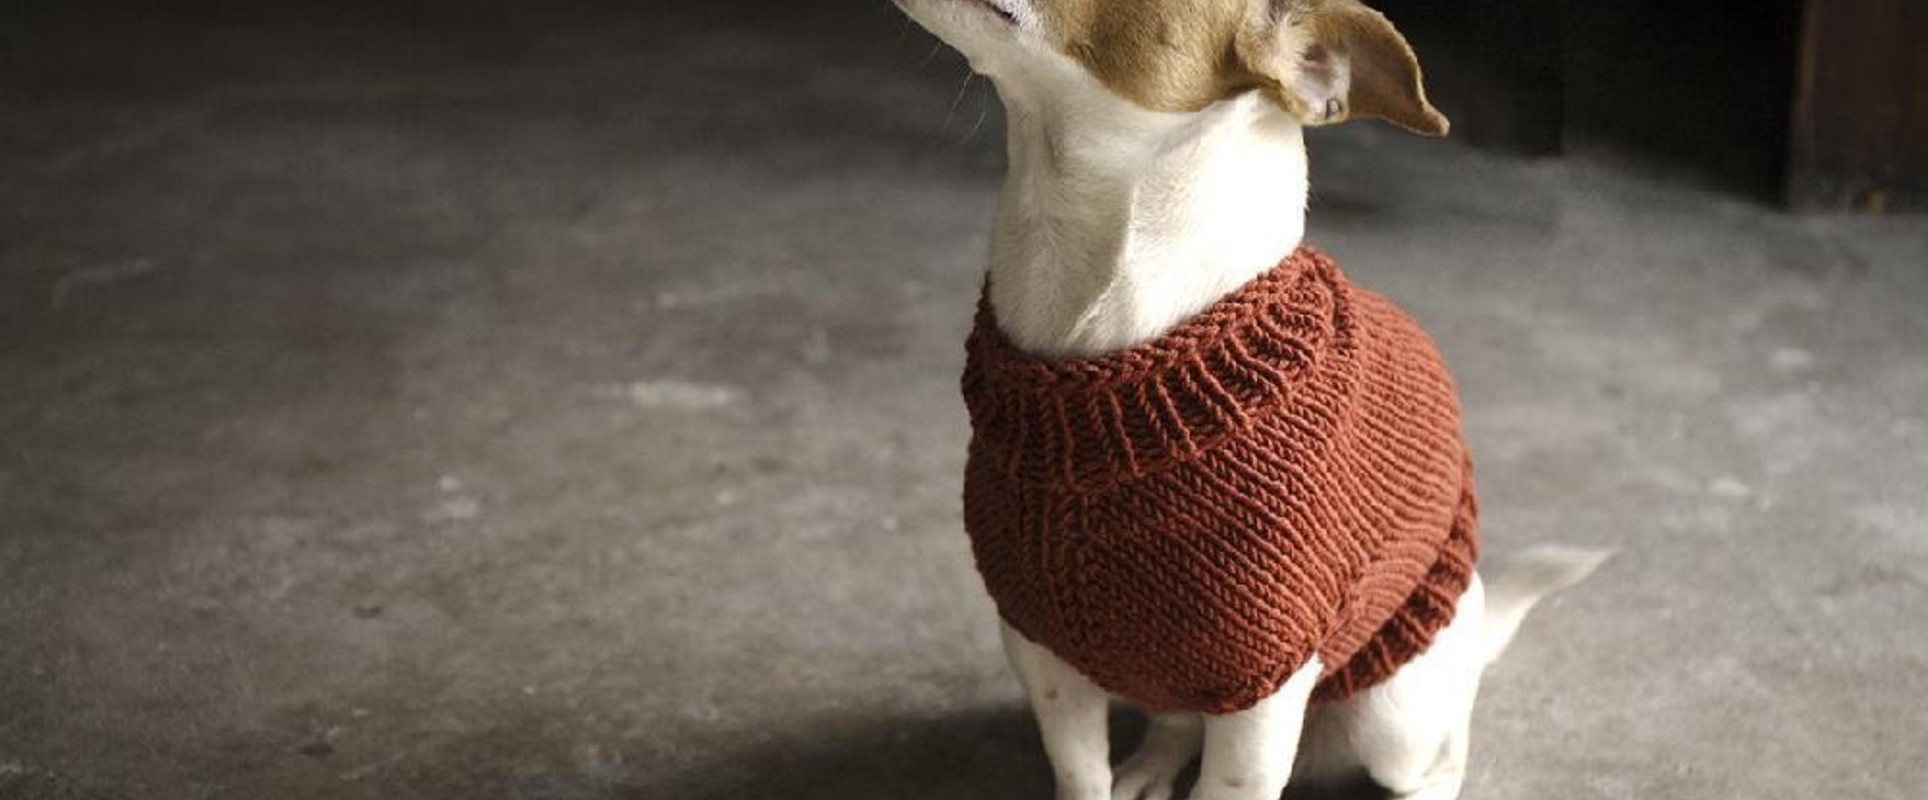 Easy Knitting Pattern For Dog Coat Top 5 Free Dog Sweater Knitting Patterns Lovecrafts